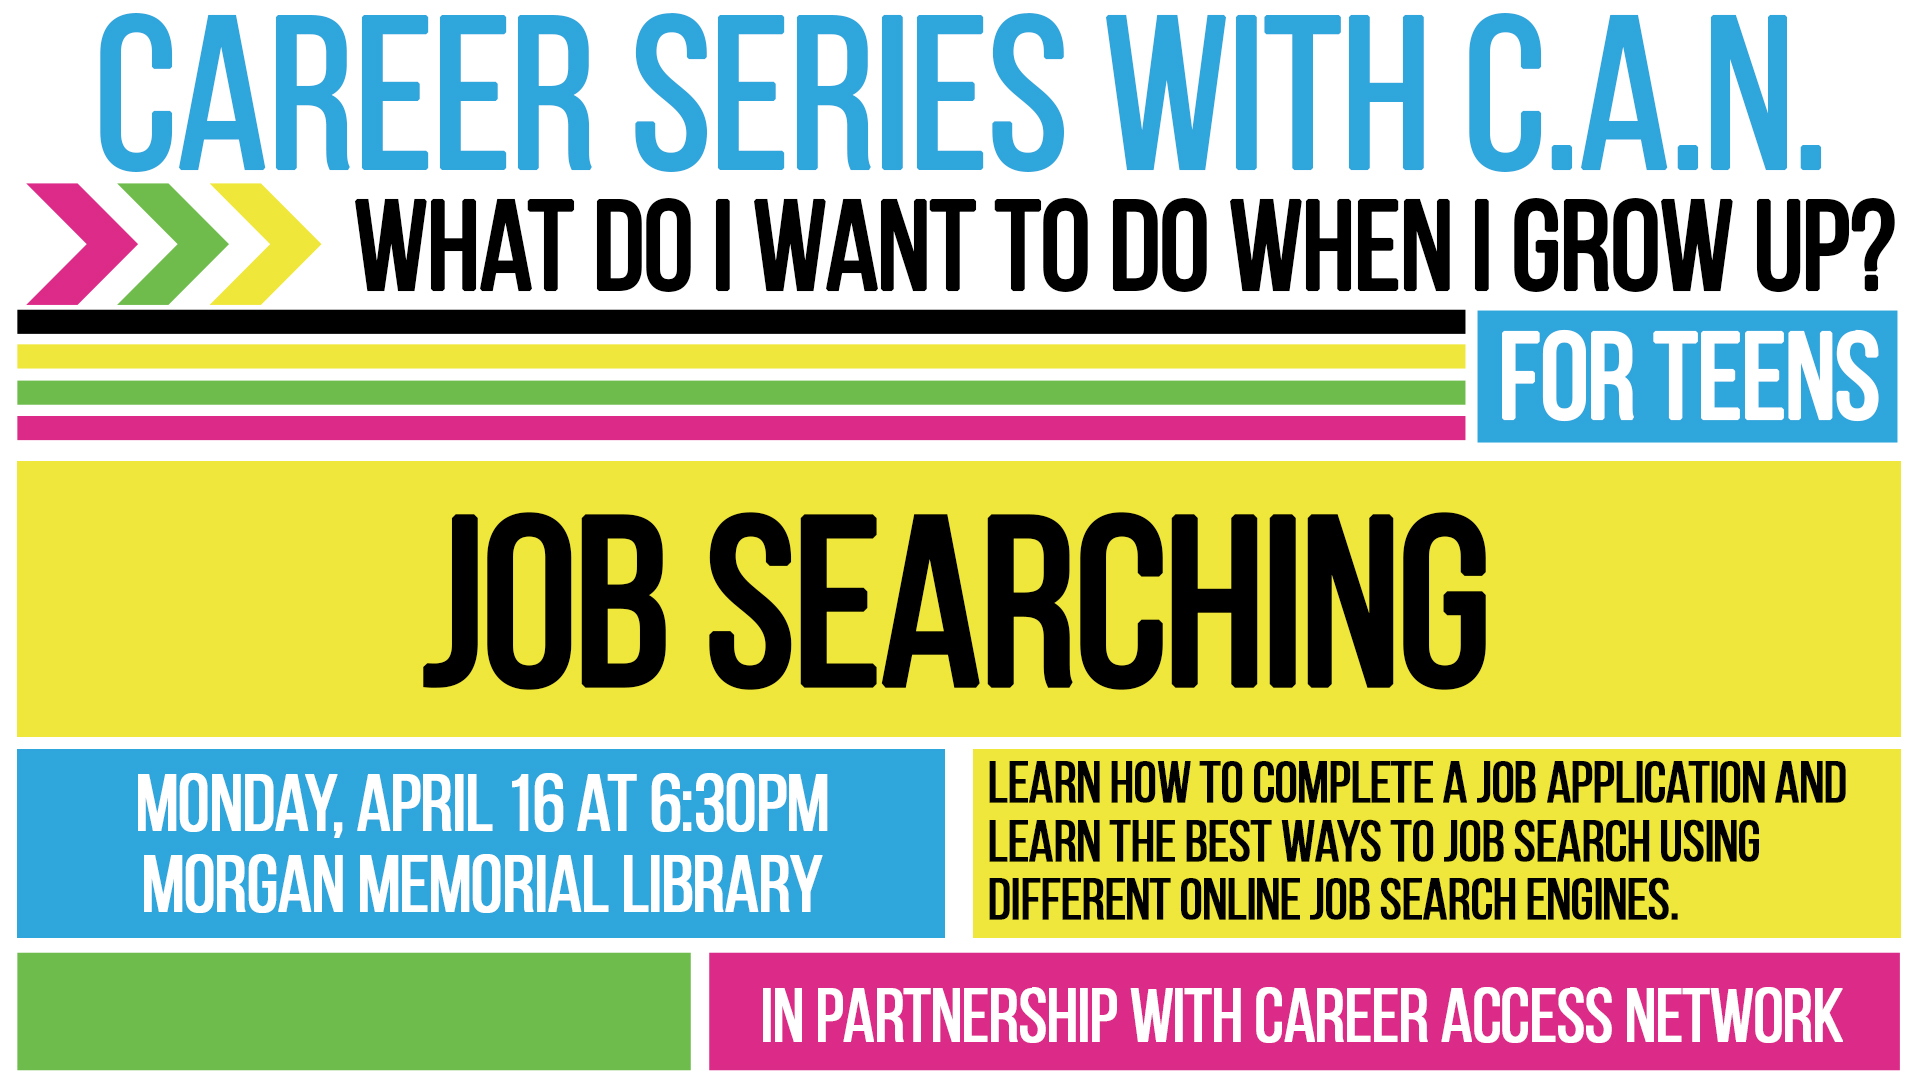 Career Series: What Do I Want To Do When I Grow Up? (For Teens)